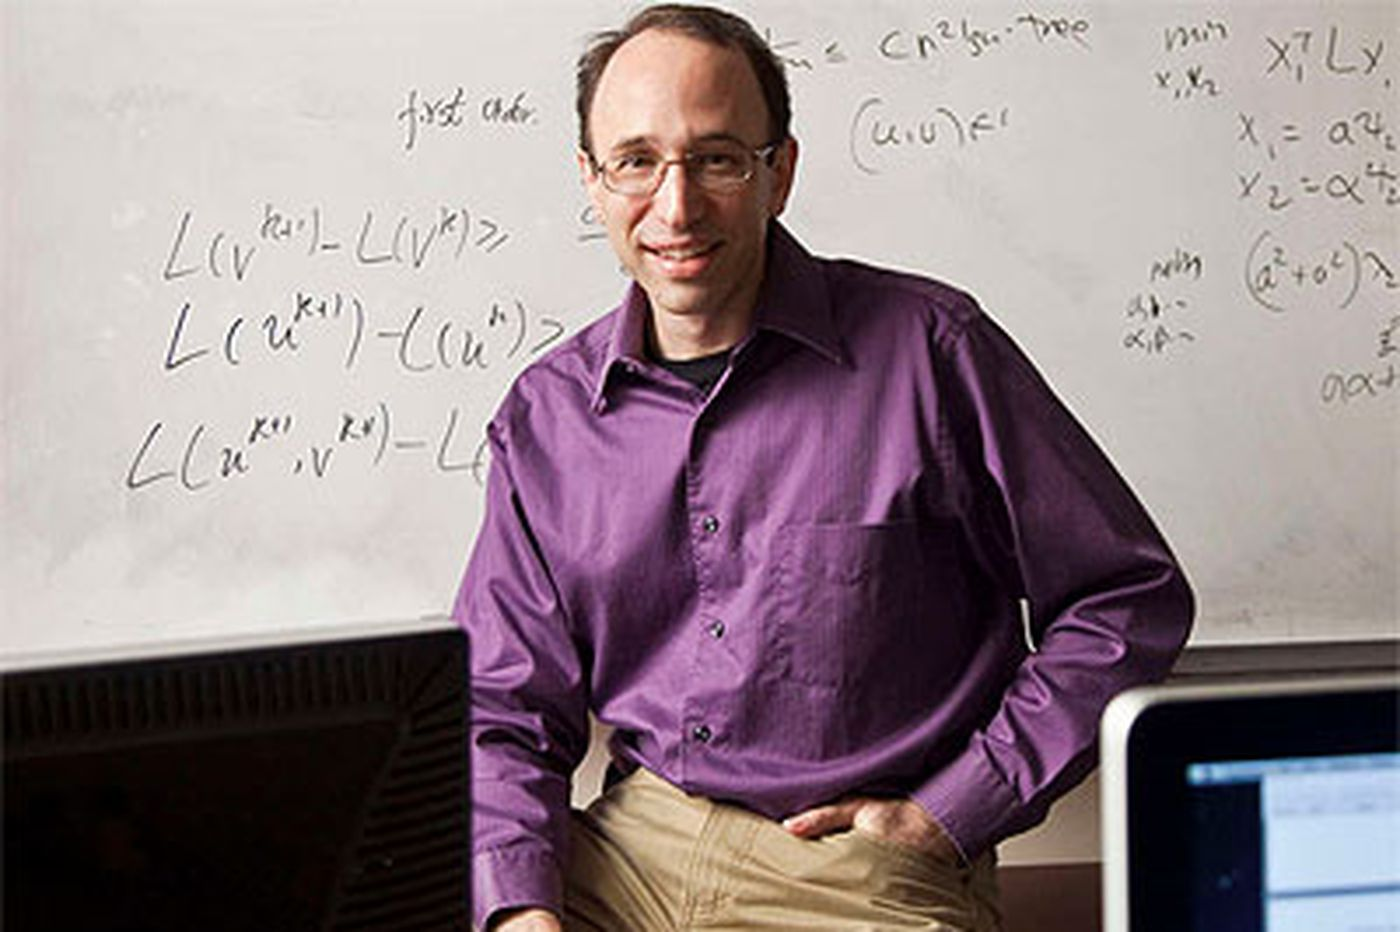 A mathematician and computer scientist with area ties wins a MacArthur fellowship